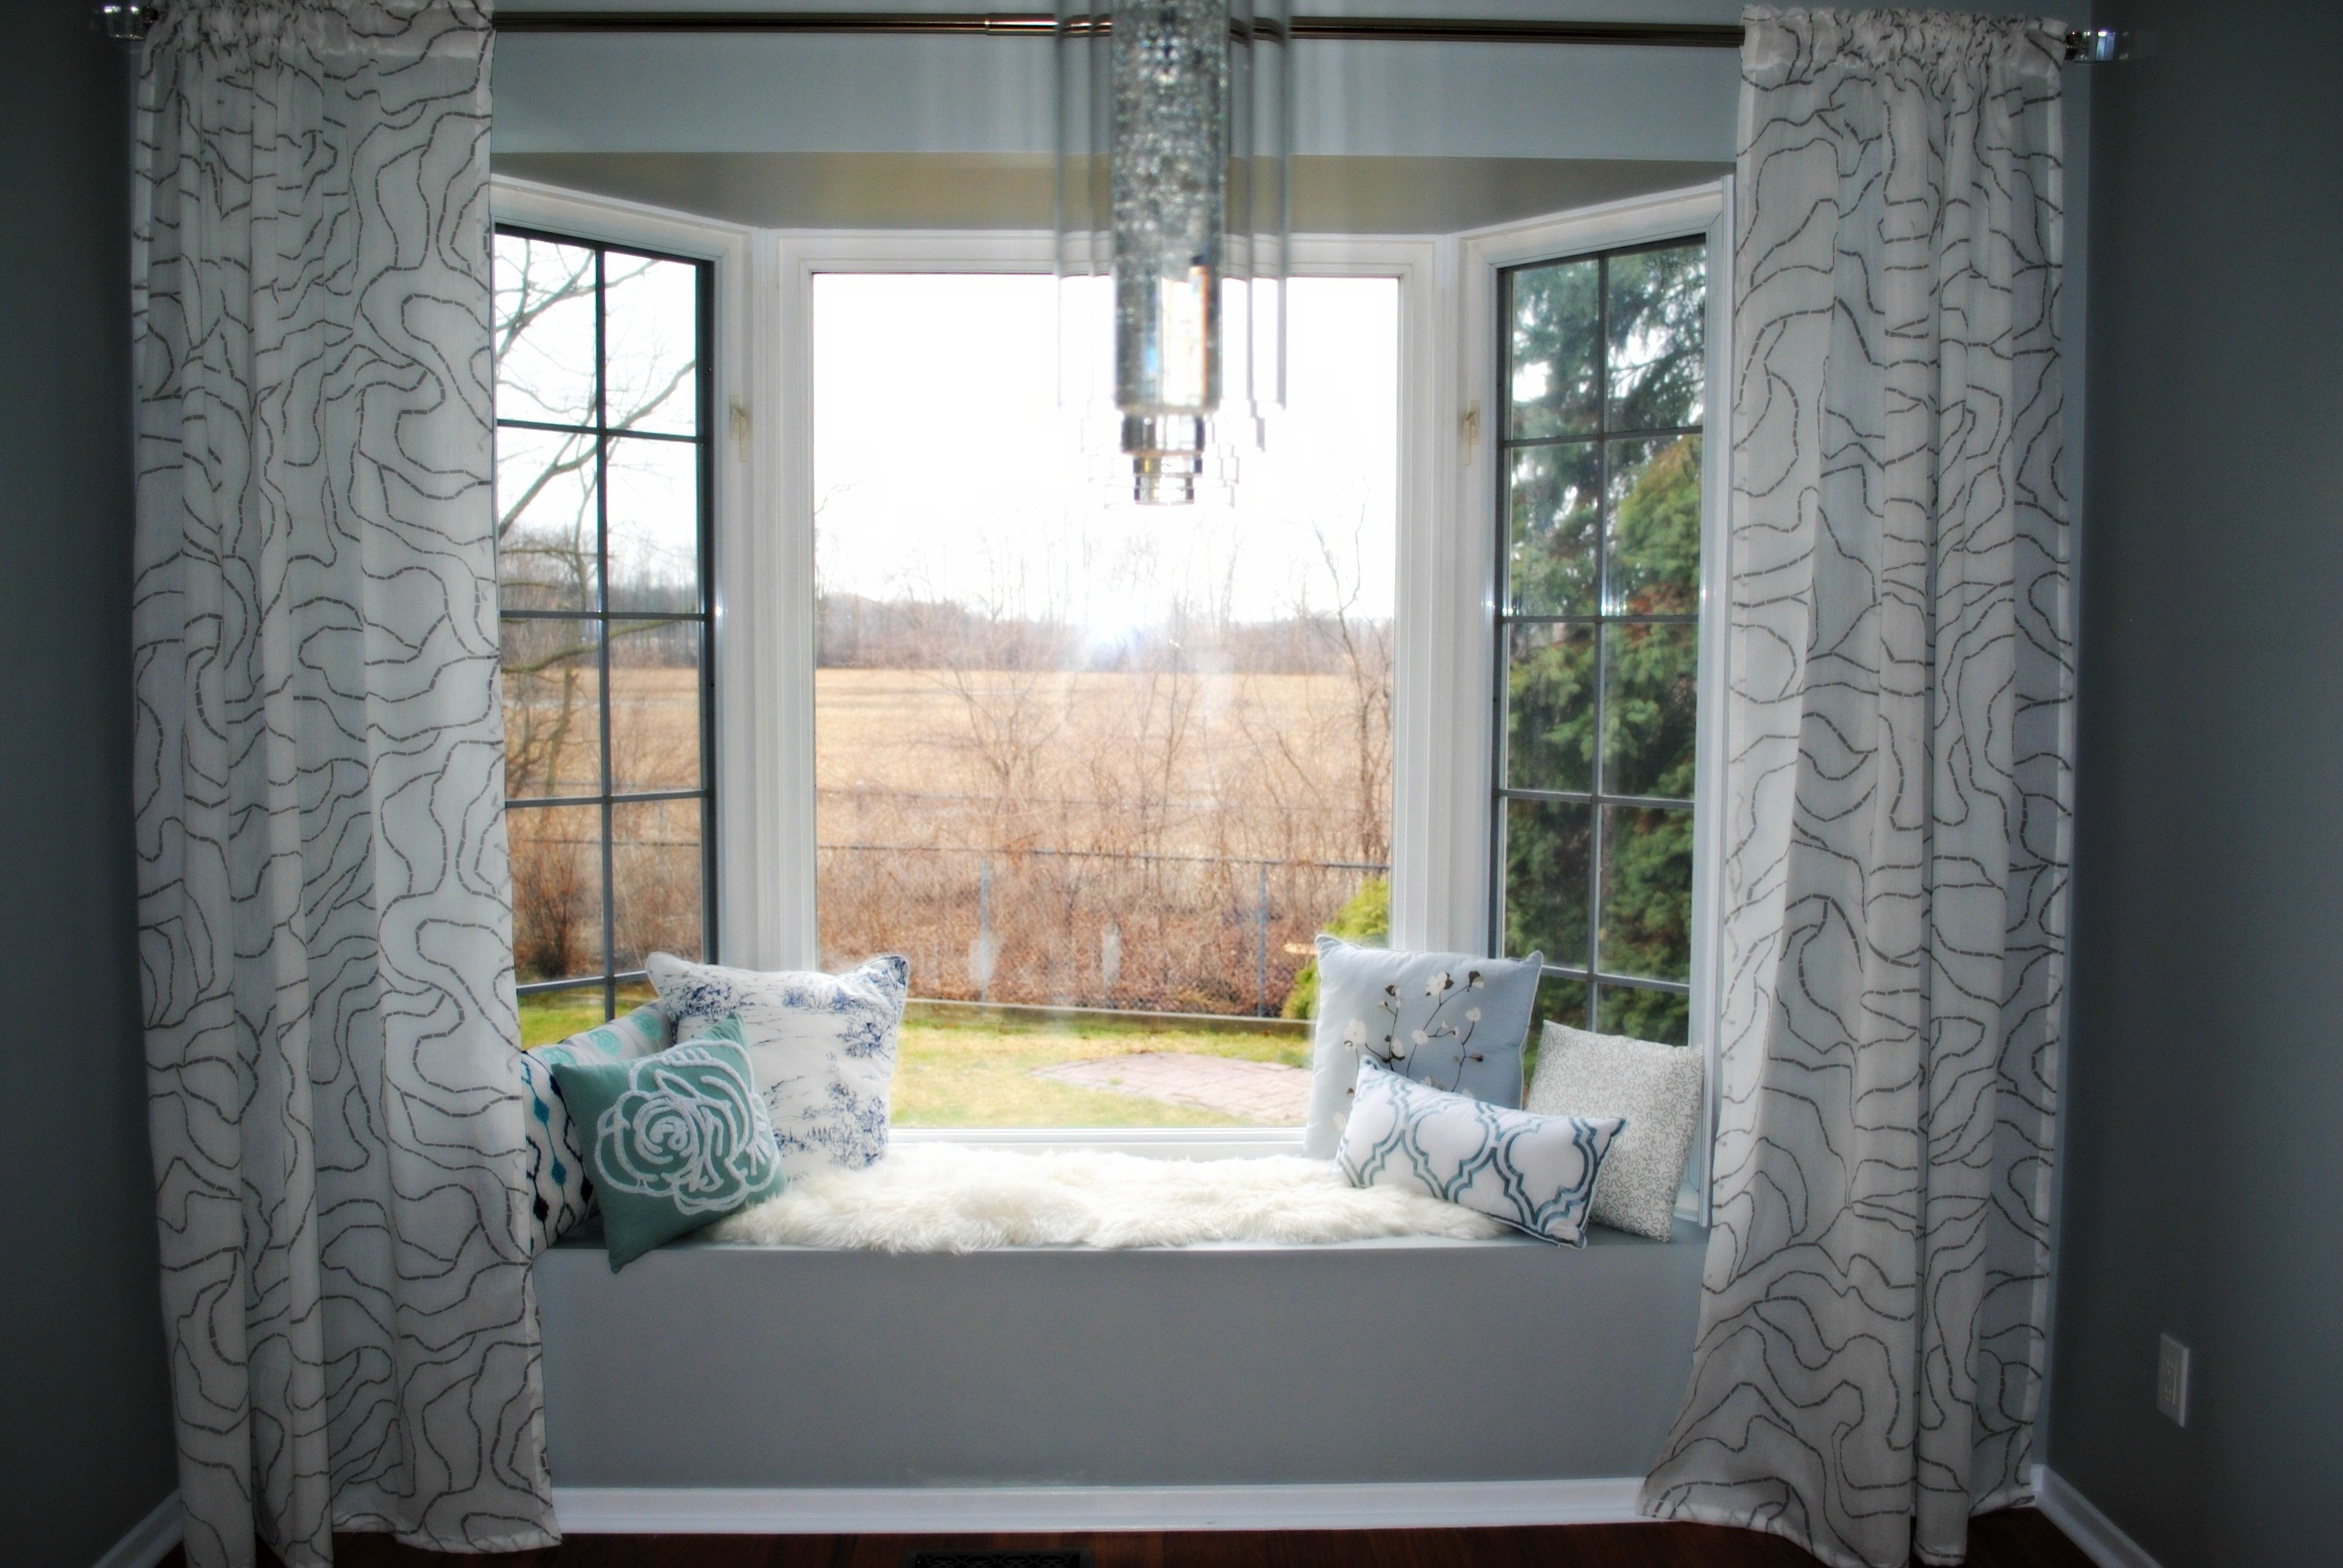 Bedroom Curtain Ideas Small Windows Elegant Living Room Curtains Designs attractive Modern Curtain for